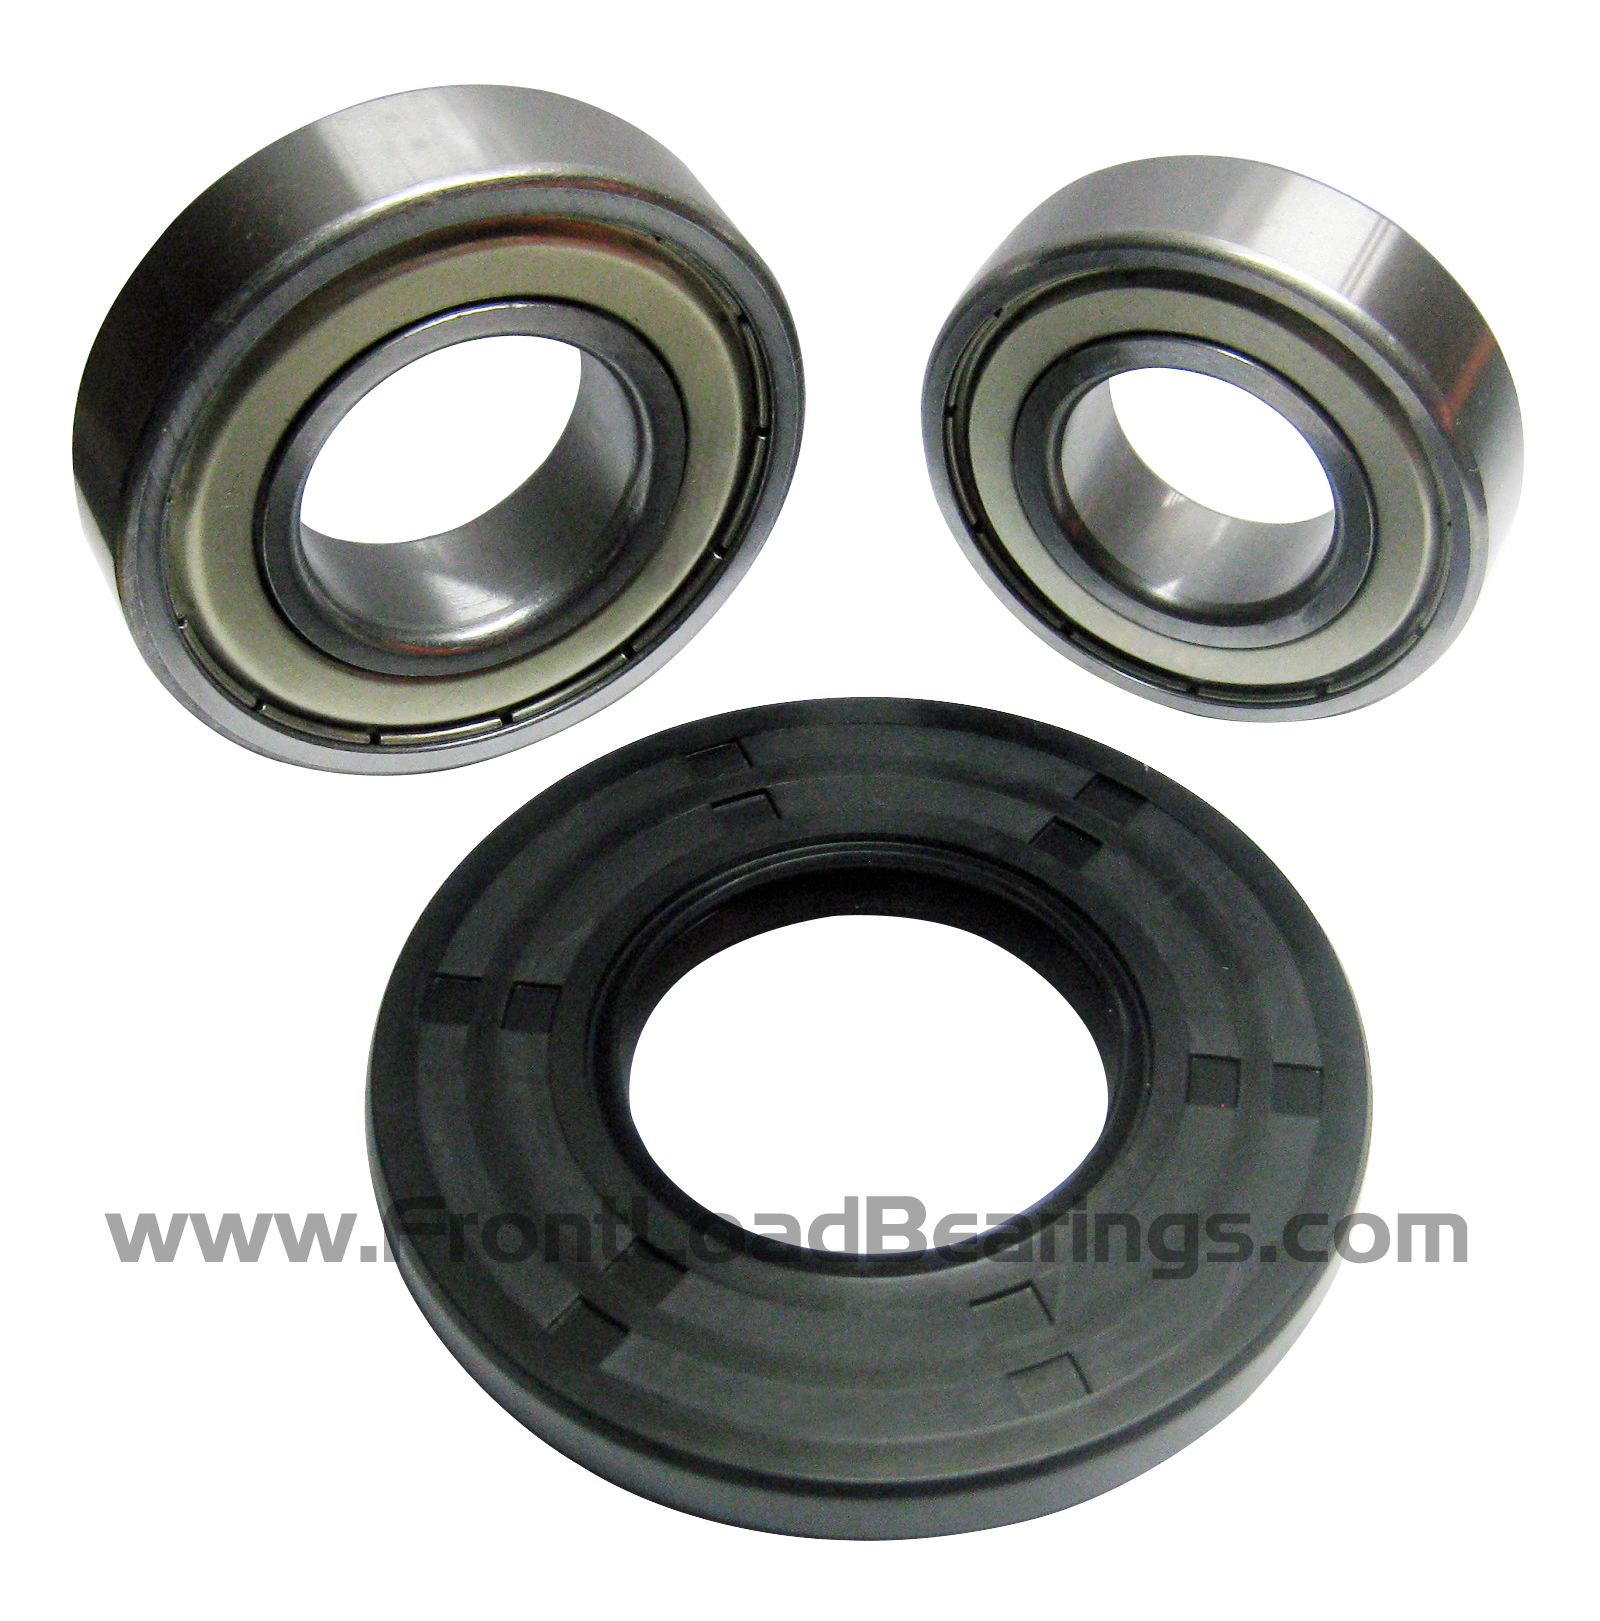 280251 High Quality Front Load Maytag Washer Tub Bearing